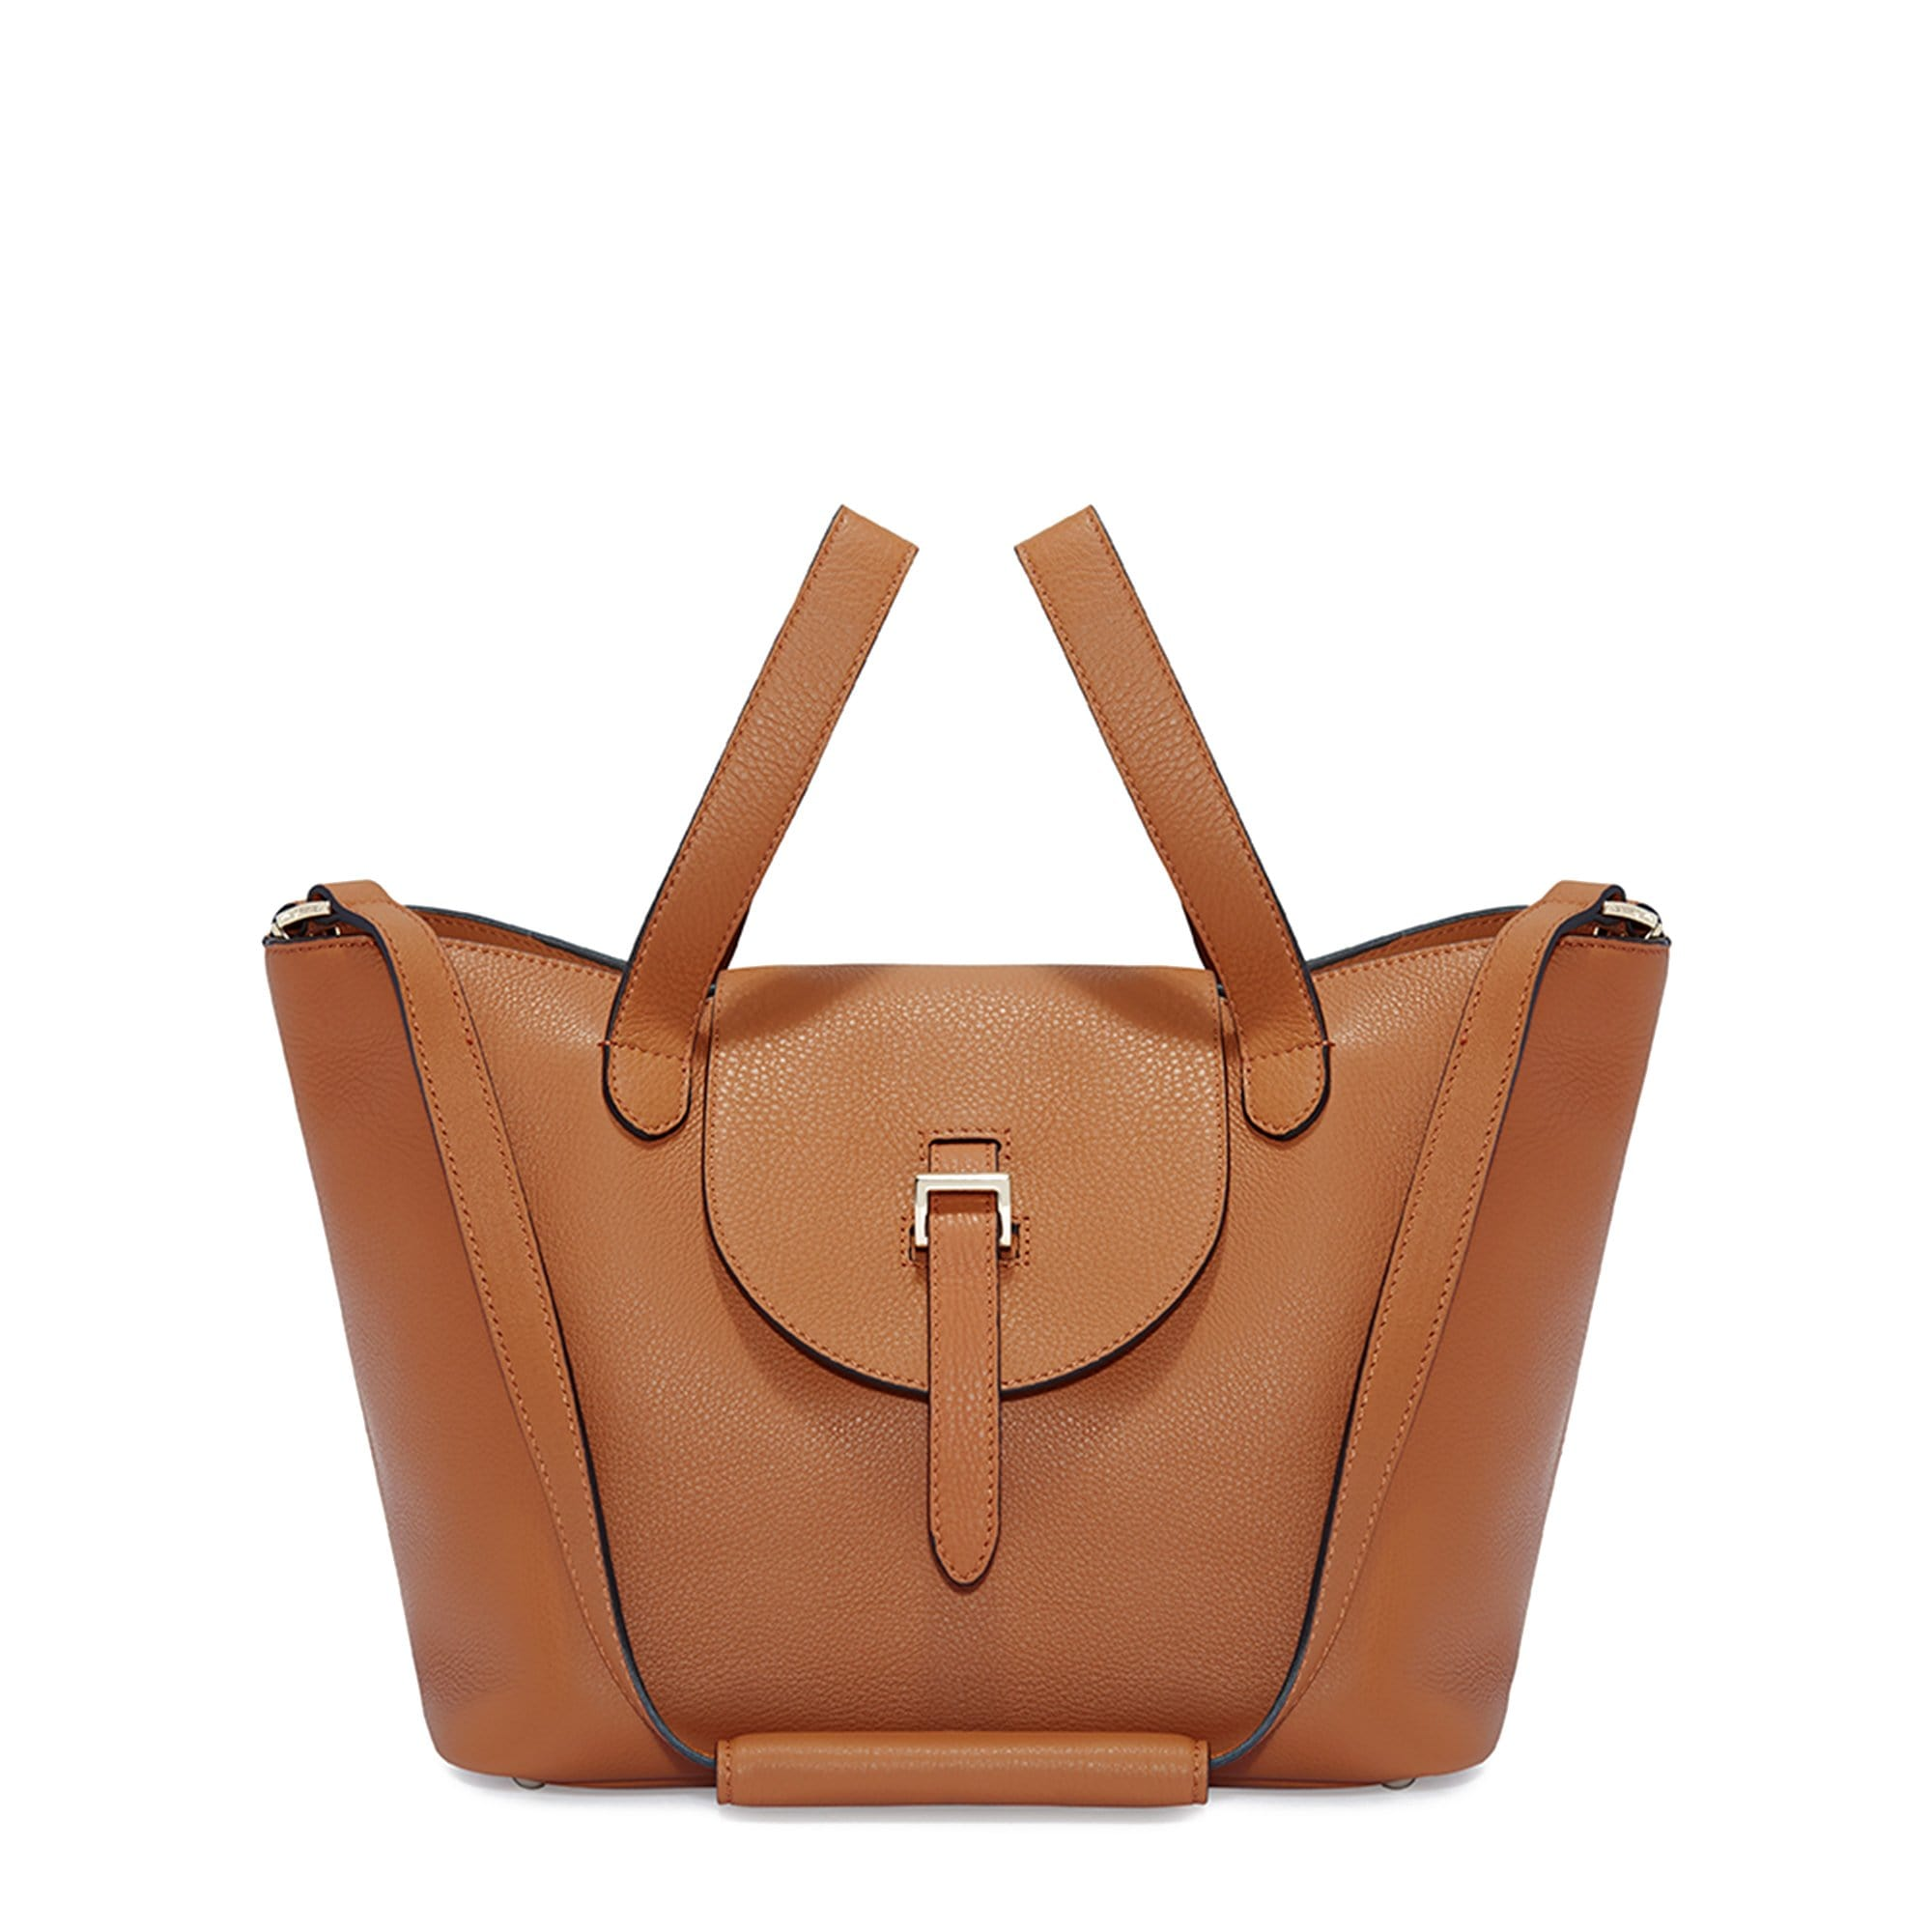 Thela Medium Tan Brown Leather Tote Bag for Women - meli melo Official